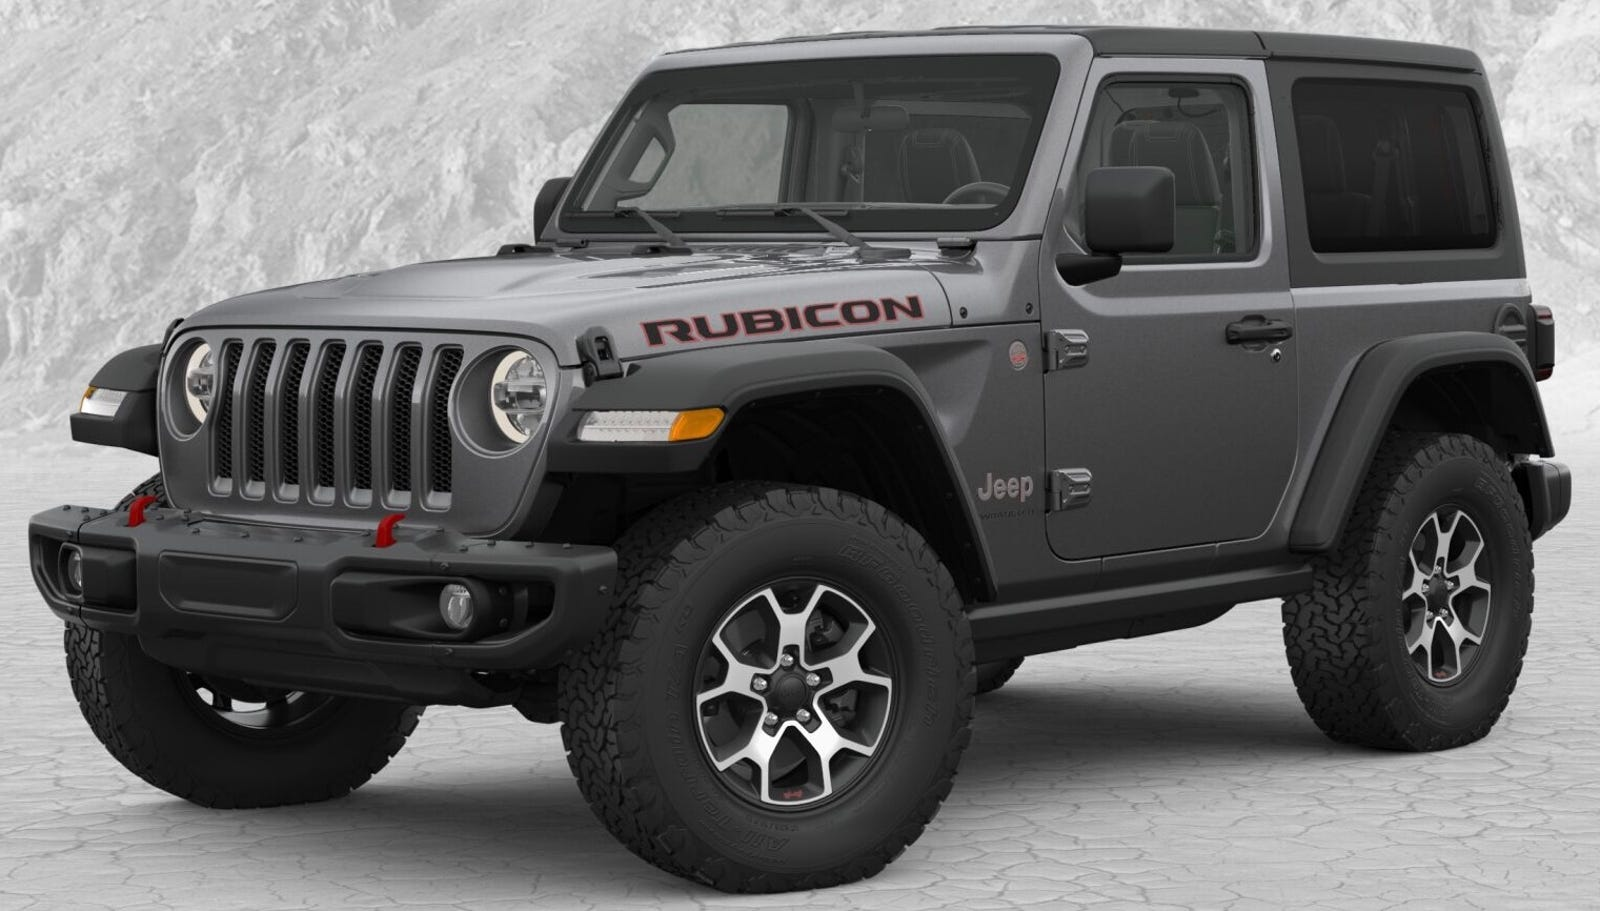 The Wrangler is a stubborn car, it's mostly used for mall-crawls nowadays but FCA never removed the off road credibility from it. I think the best iteration will be the hybrid one.